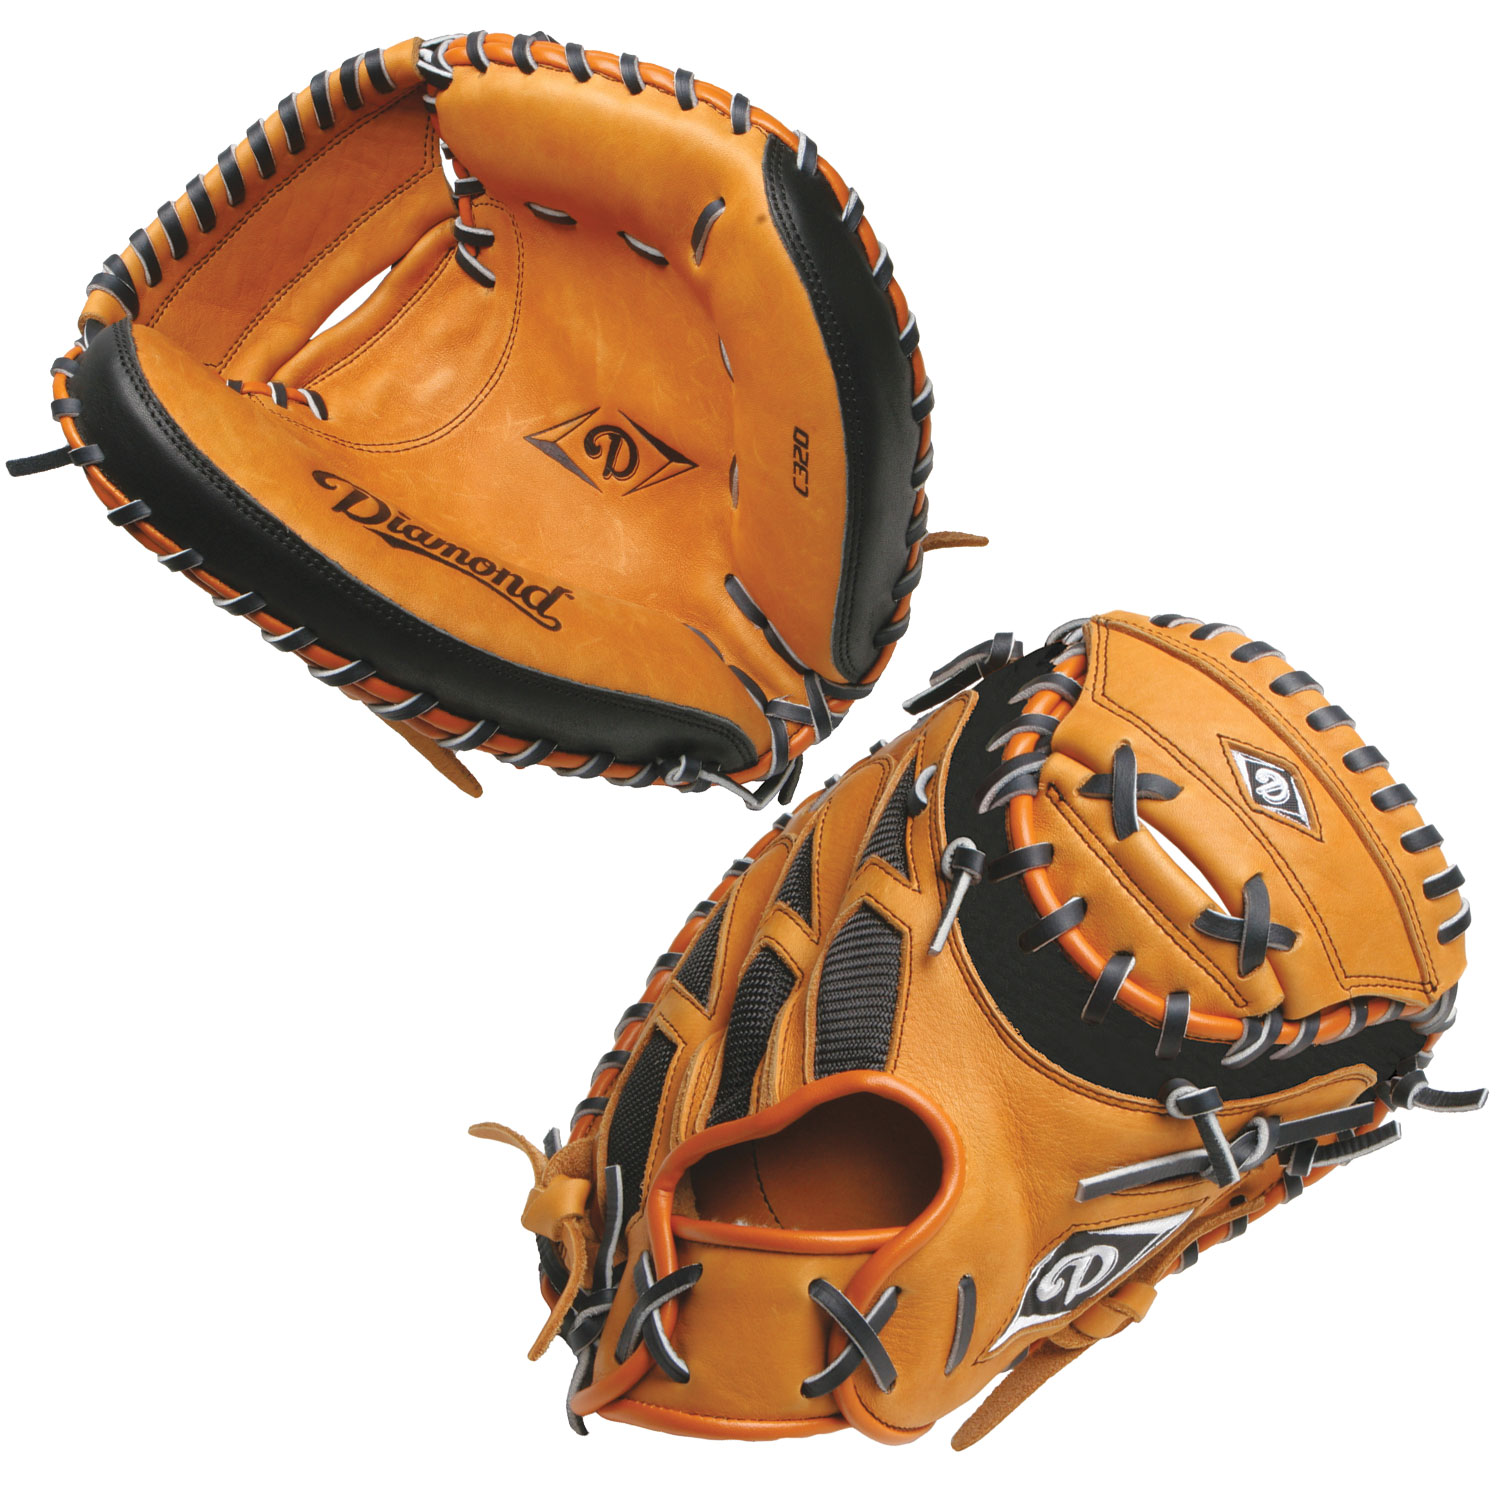 Diamond C320 32 Inch DCM-C320 Baseball Catcher's Mitt by